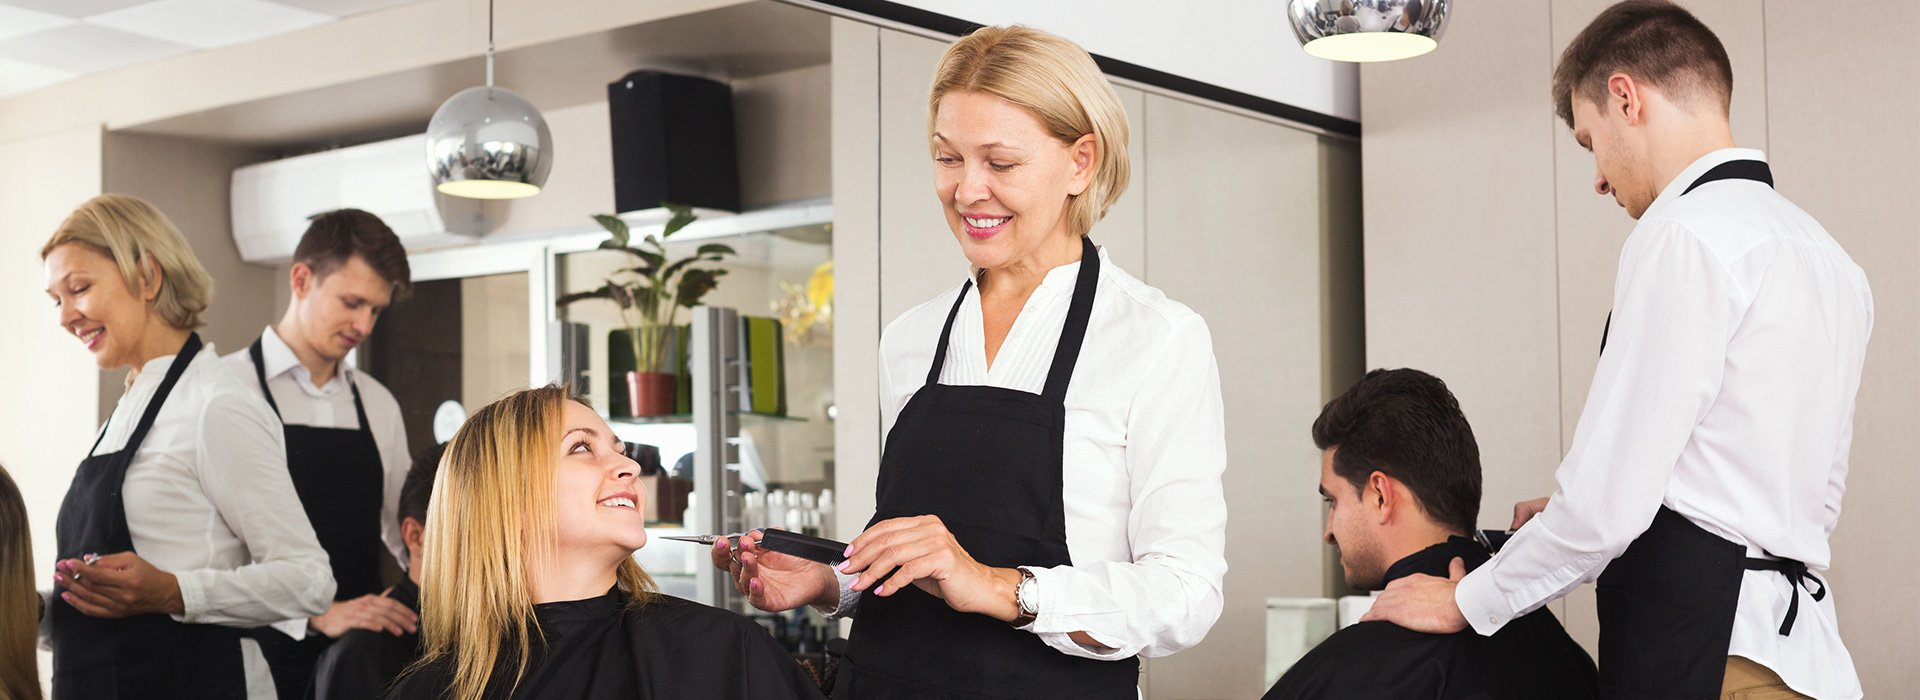 Tri county beauty academy salon services litchfield il for Academy beauty salon